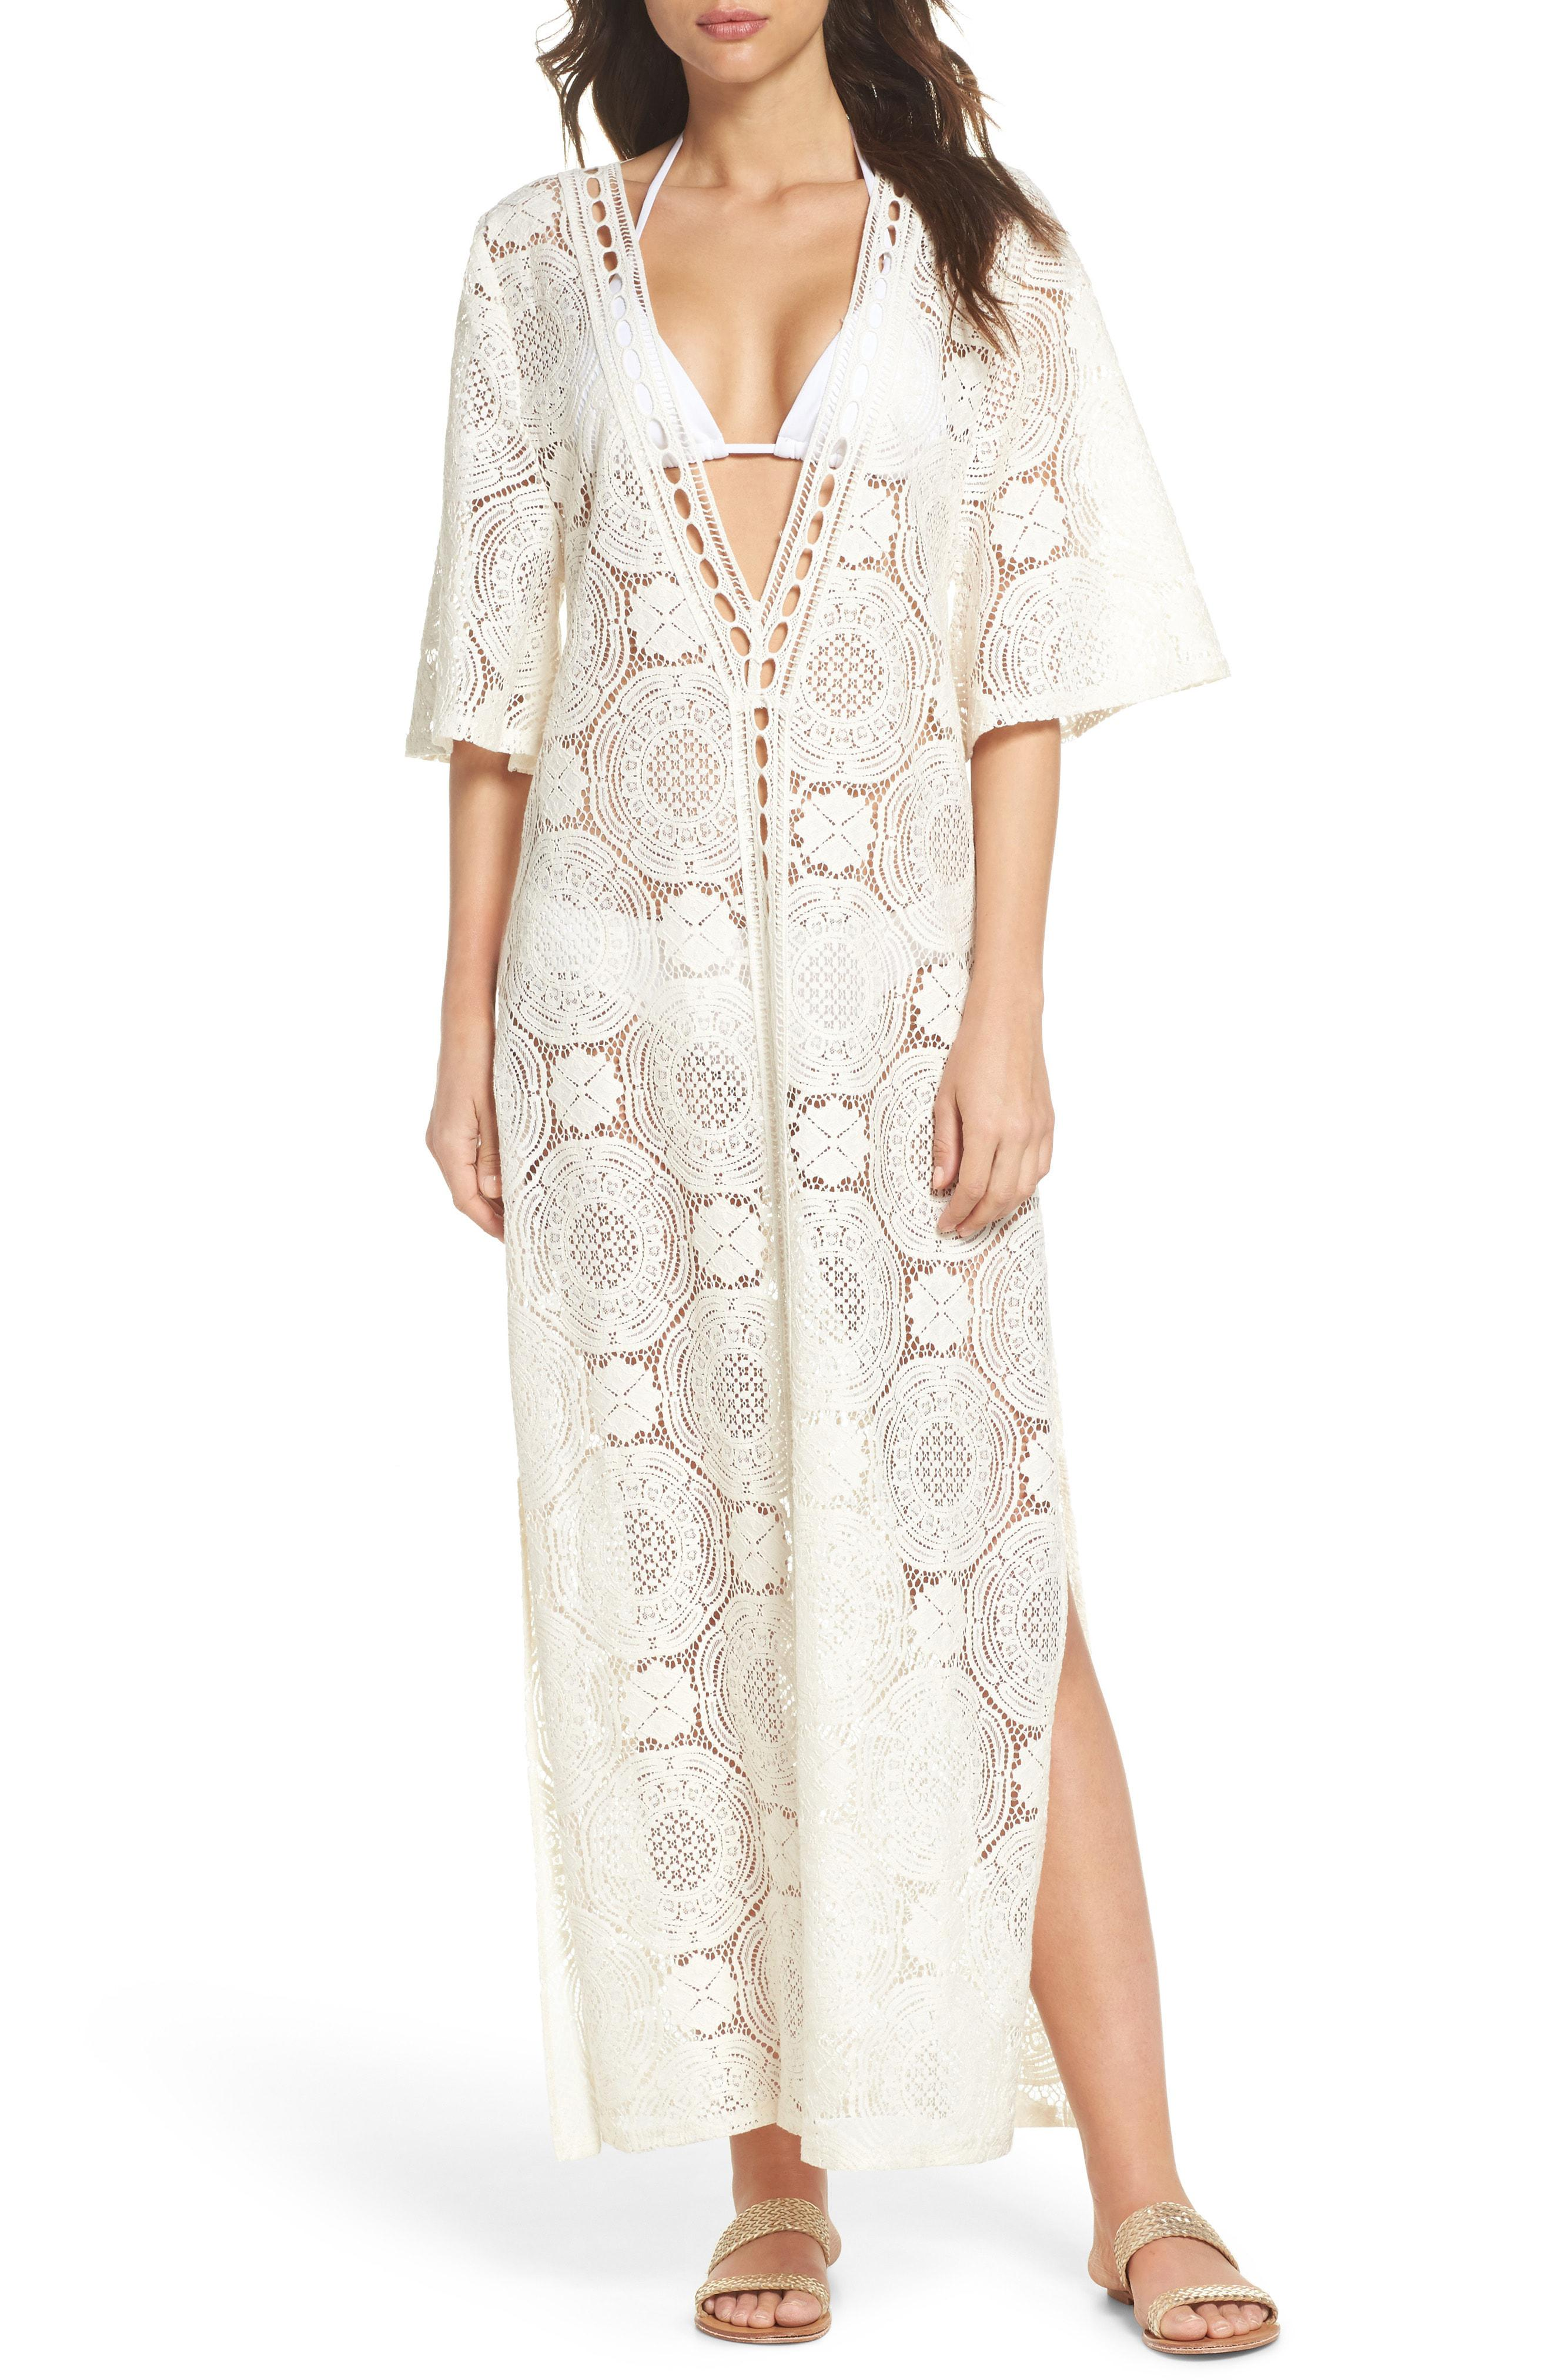 2a04de6cea Chelsea28 Lace Cover-up Maxi Dress in White - Lyst